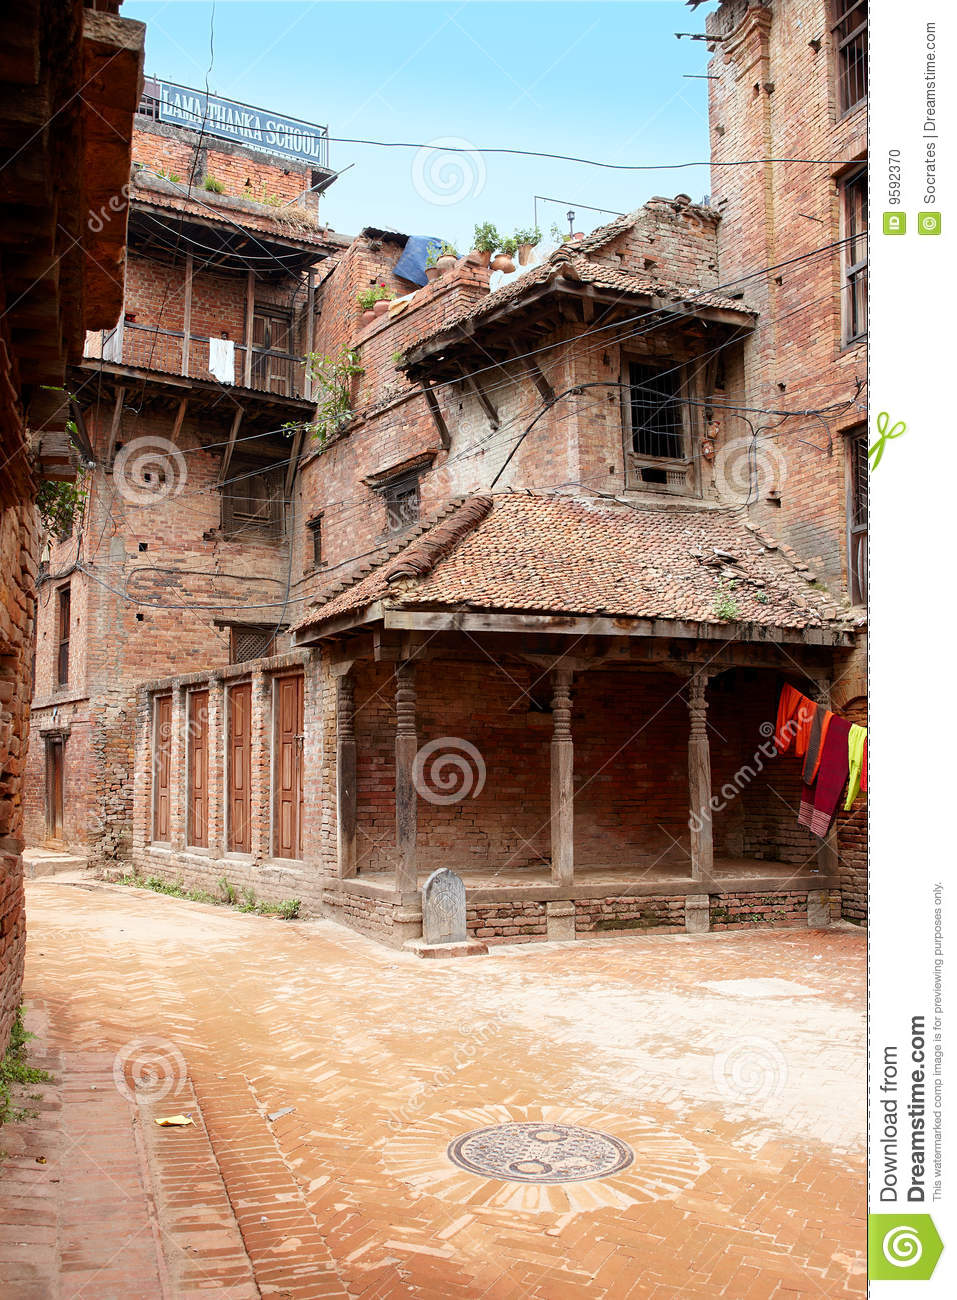 All Road Signs >> Old Houses In Kathmandu, Nepal Stock Photo - Image of ...